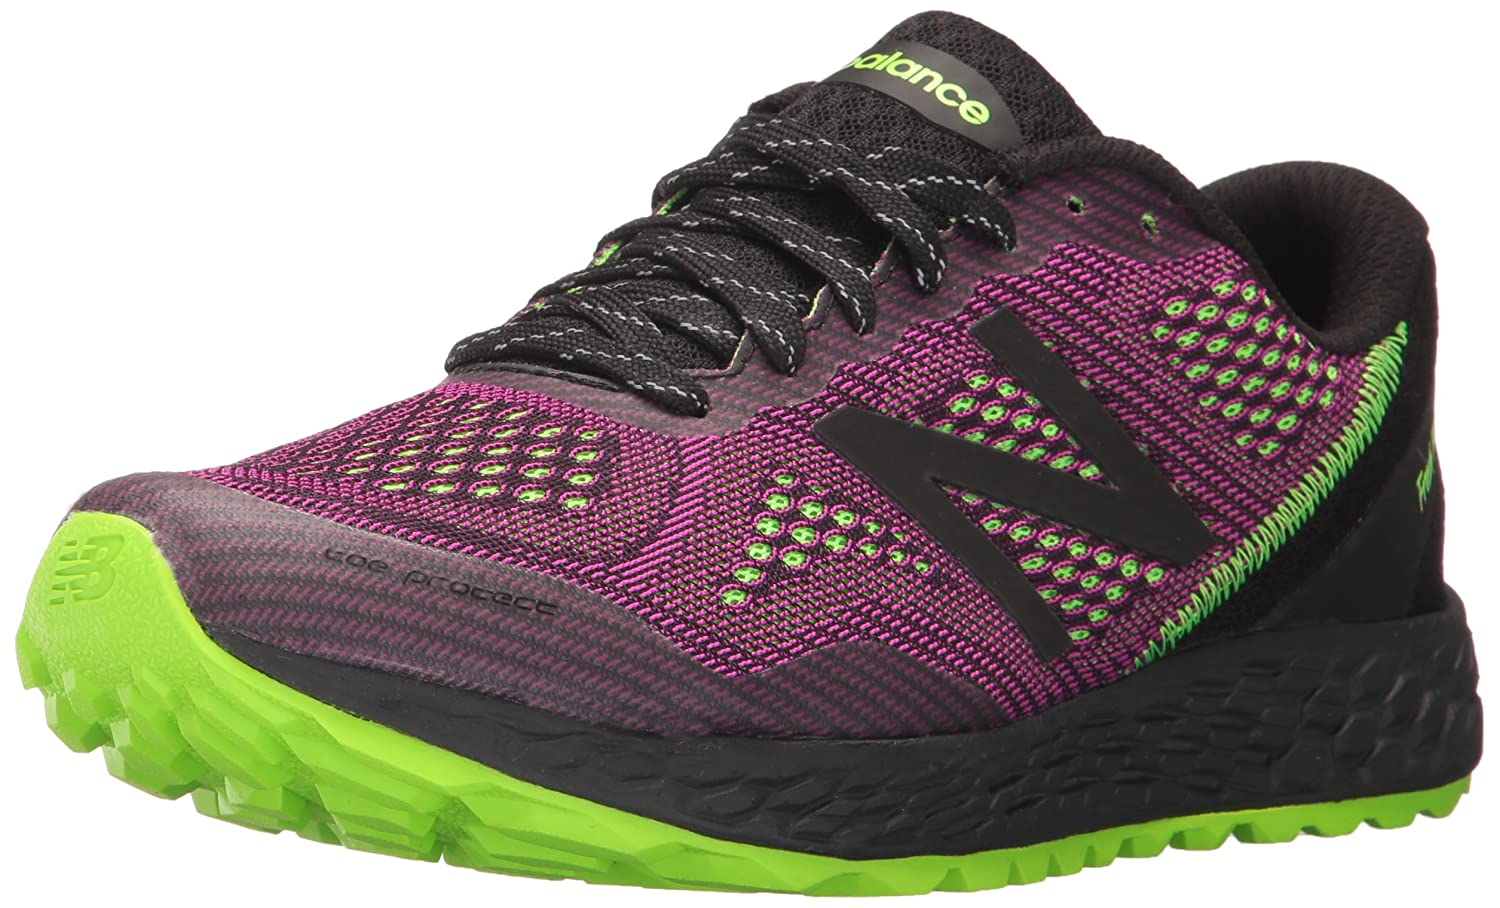 New Balance Women's Gobiv2 Running Shoe B01NA8V518 8.5 B(M) US|Poisonberry/Black